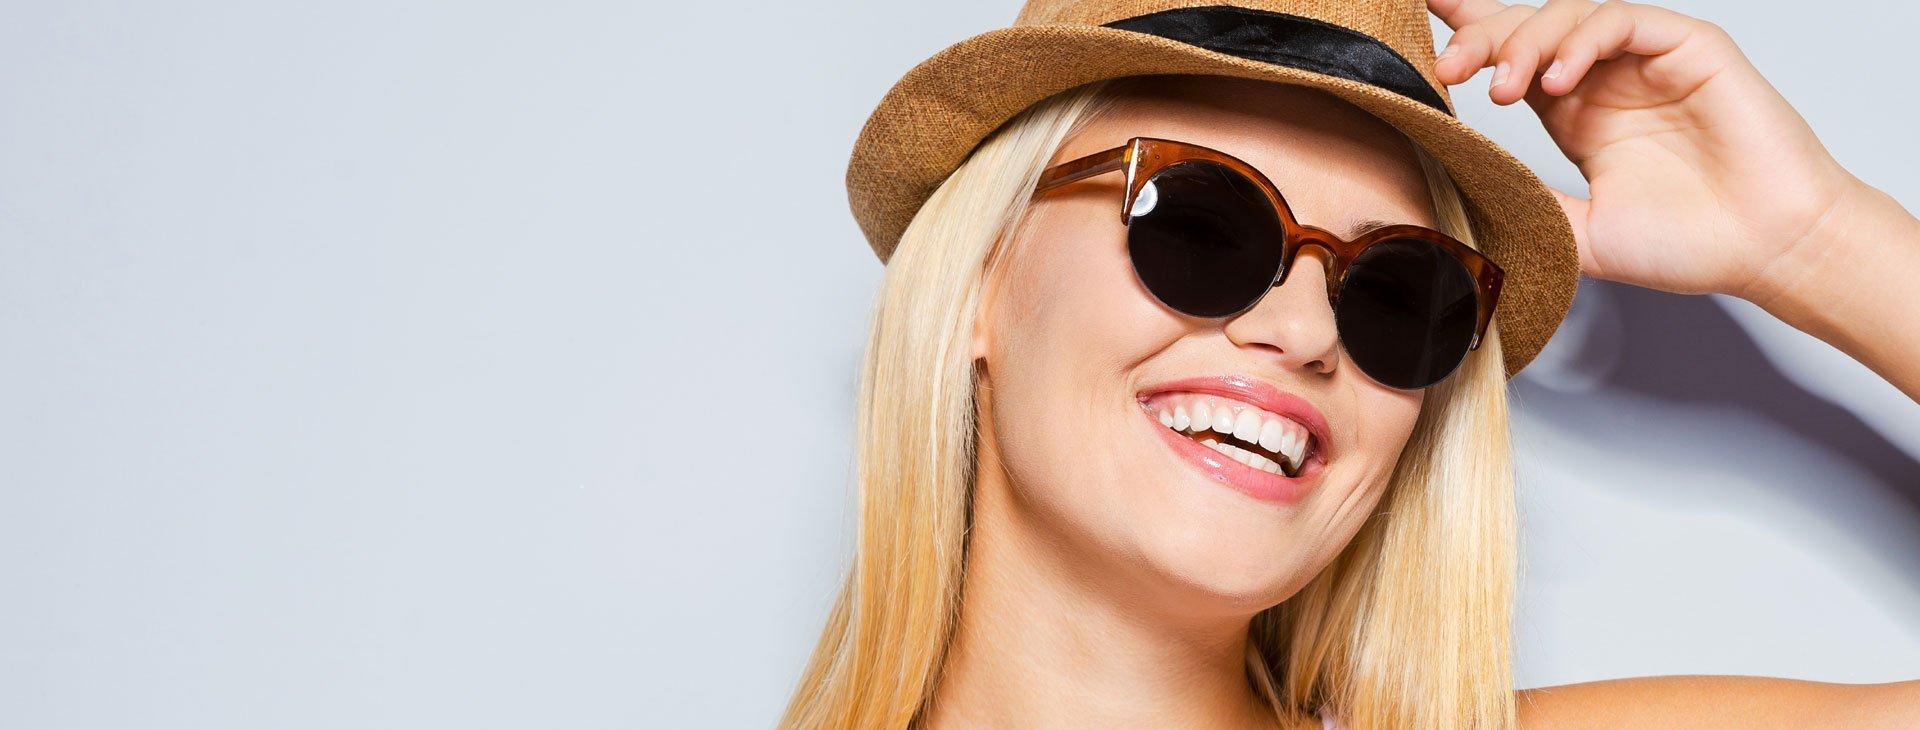 Woman with hat and sunglasses using Sunsafe Rx